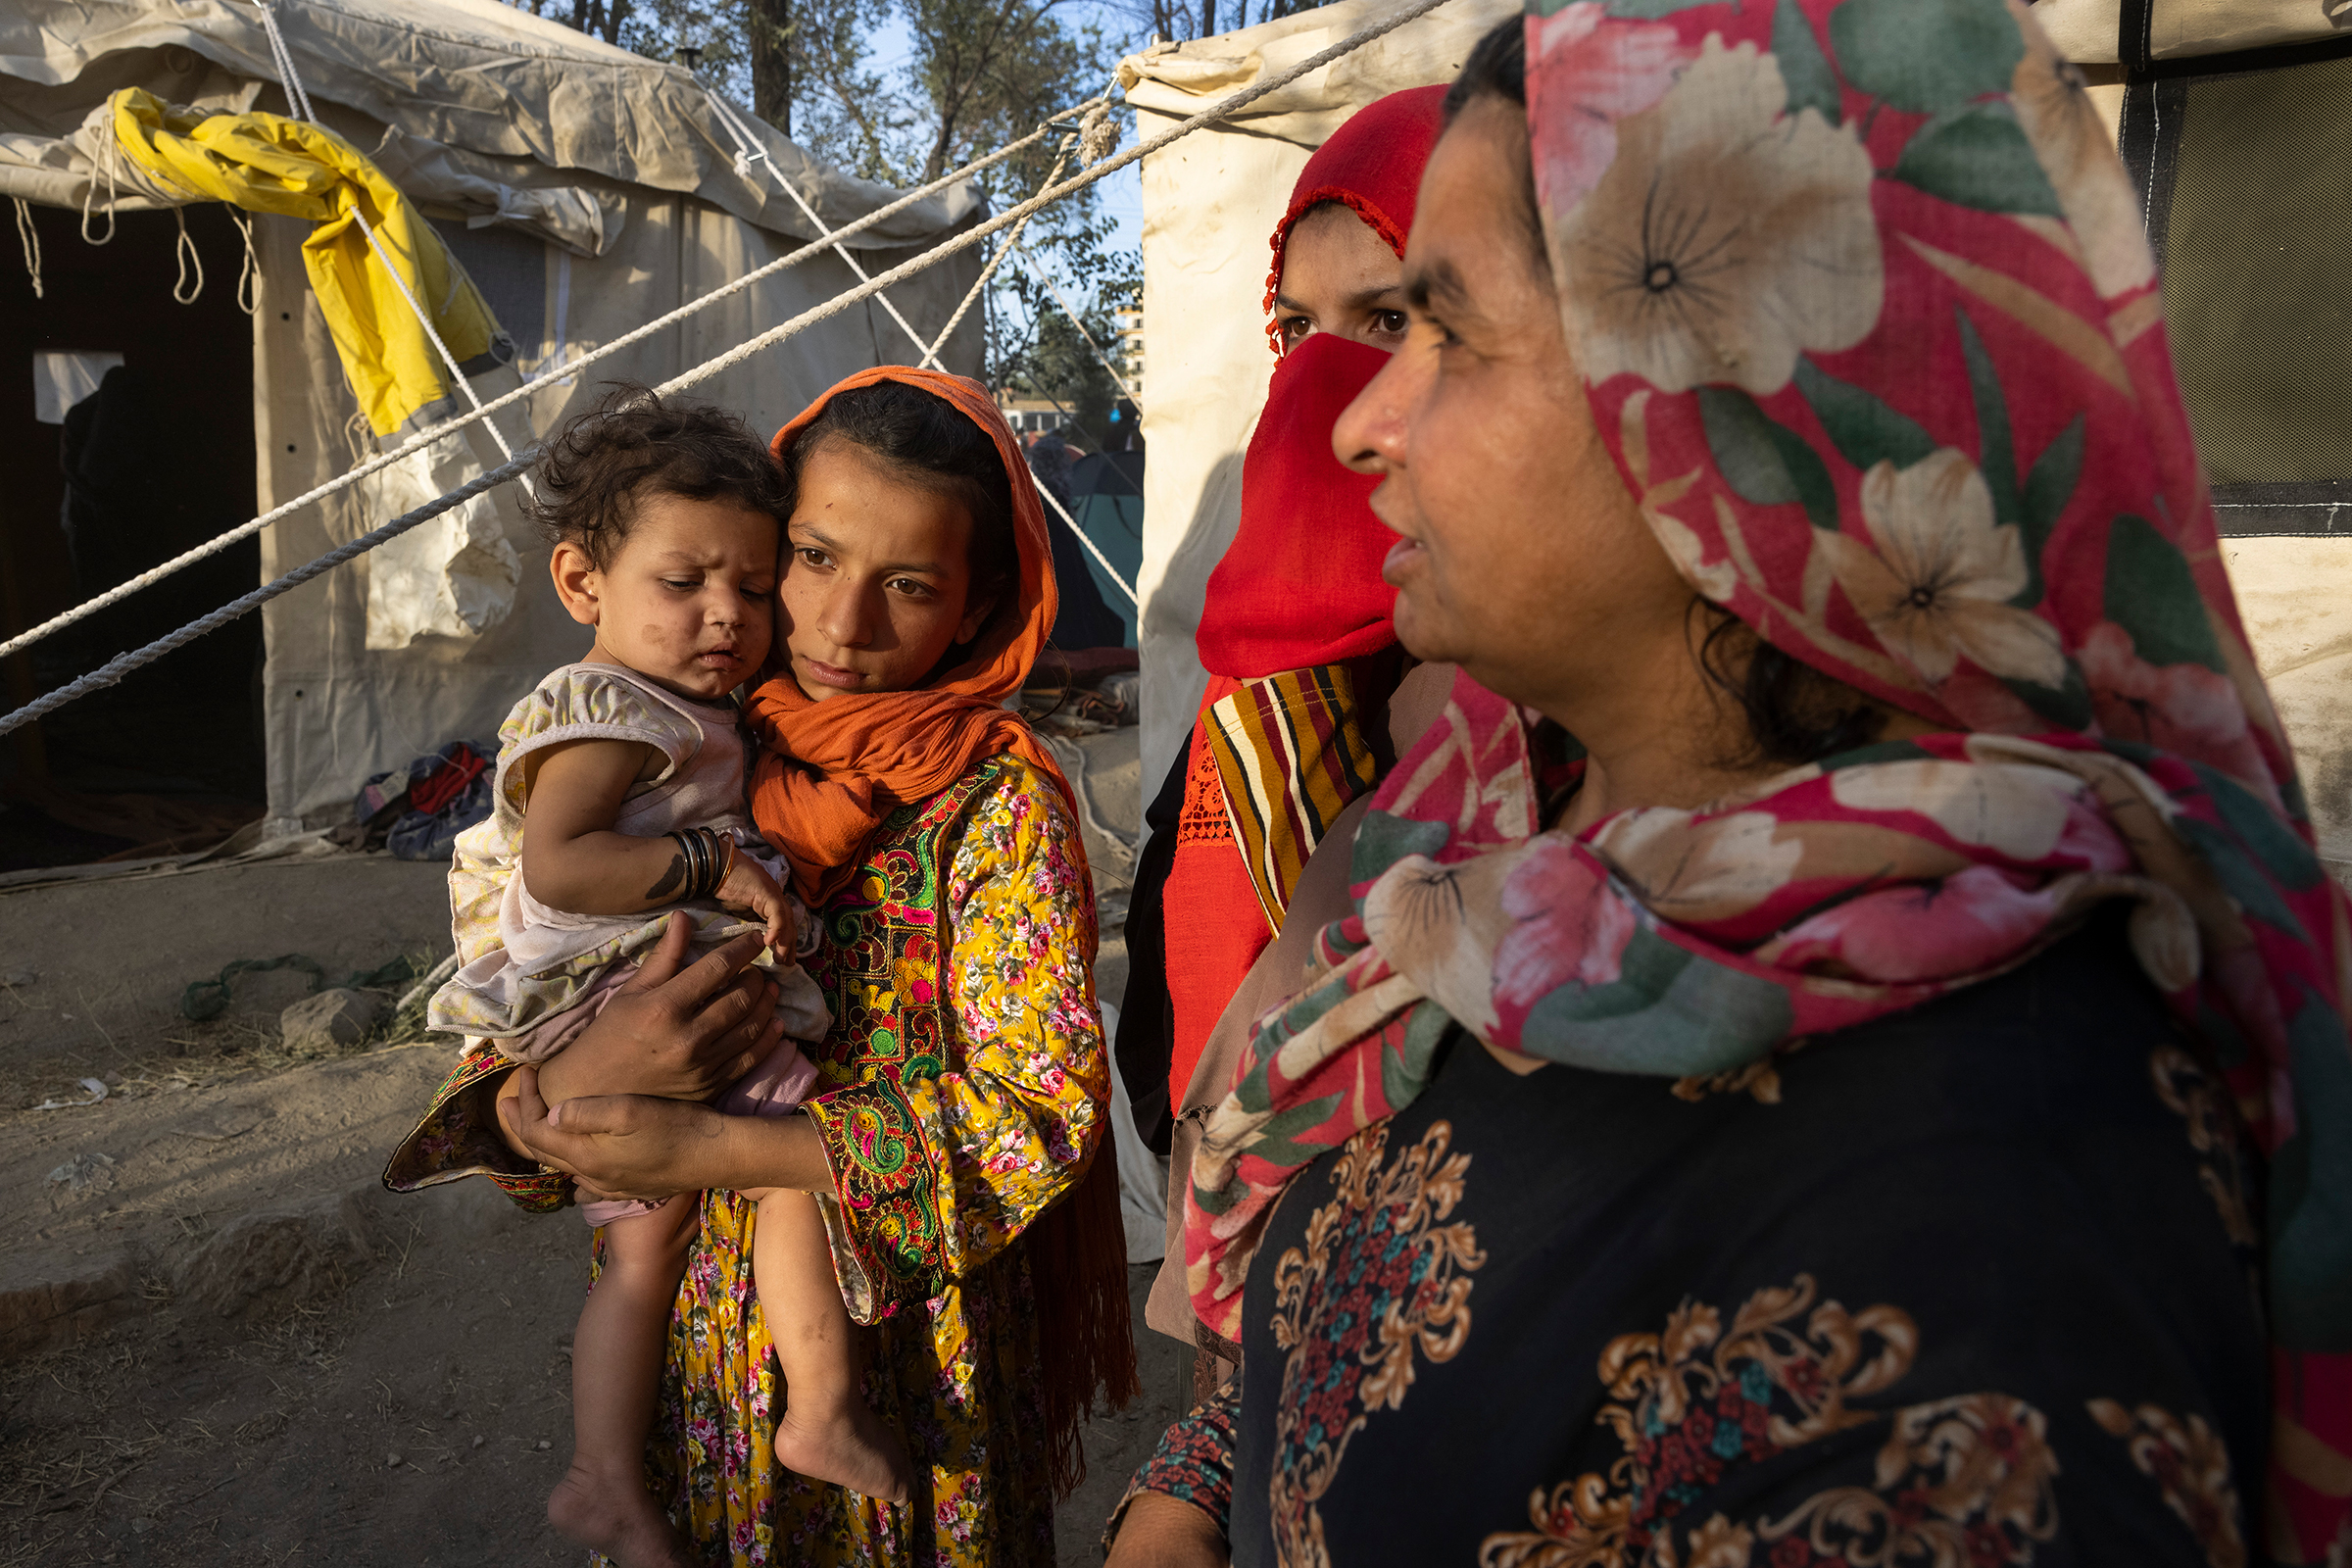 Halida, an 11-year-old whose father was killed by the Taliban, holds her eight-month-old cousin, Shafika, alongside family members as Afghans from the northern provinces arrive at a makeshift camp in Kabul on Aug. 10, 2021. Five days later, the Taliban took control of Kabul.